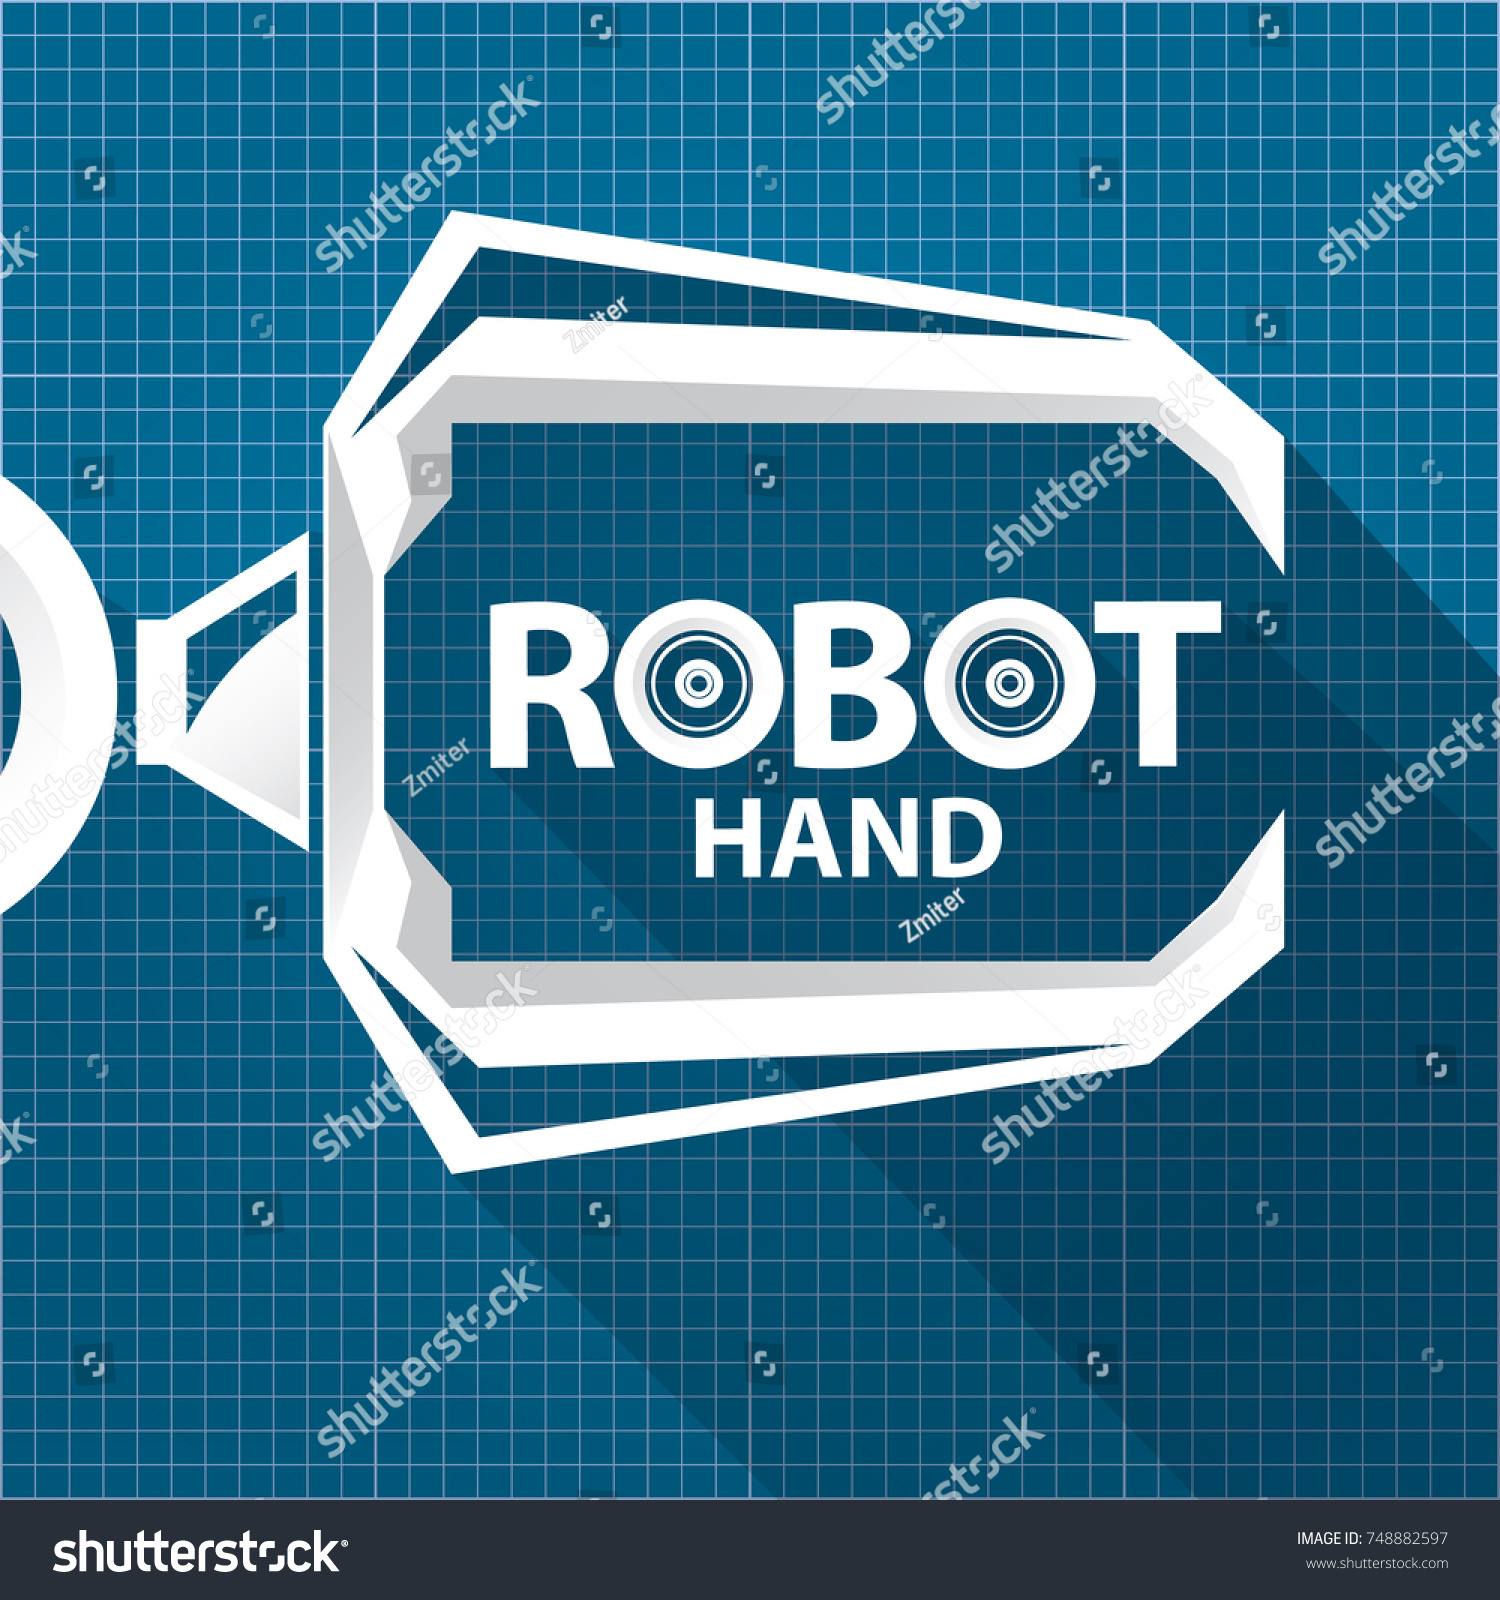 Vector robotic arm symbol on blueprint vectores en stock 748882597 vector robotic arm symbol on blueprint paper background robot hand technology background design template malvernweather Image collections